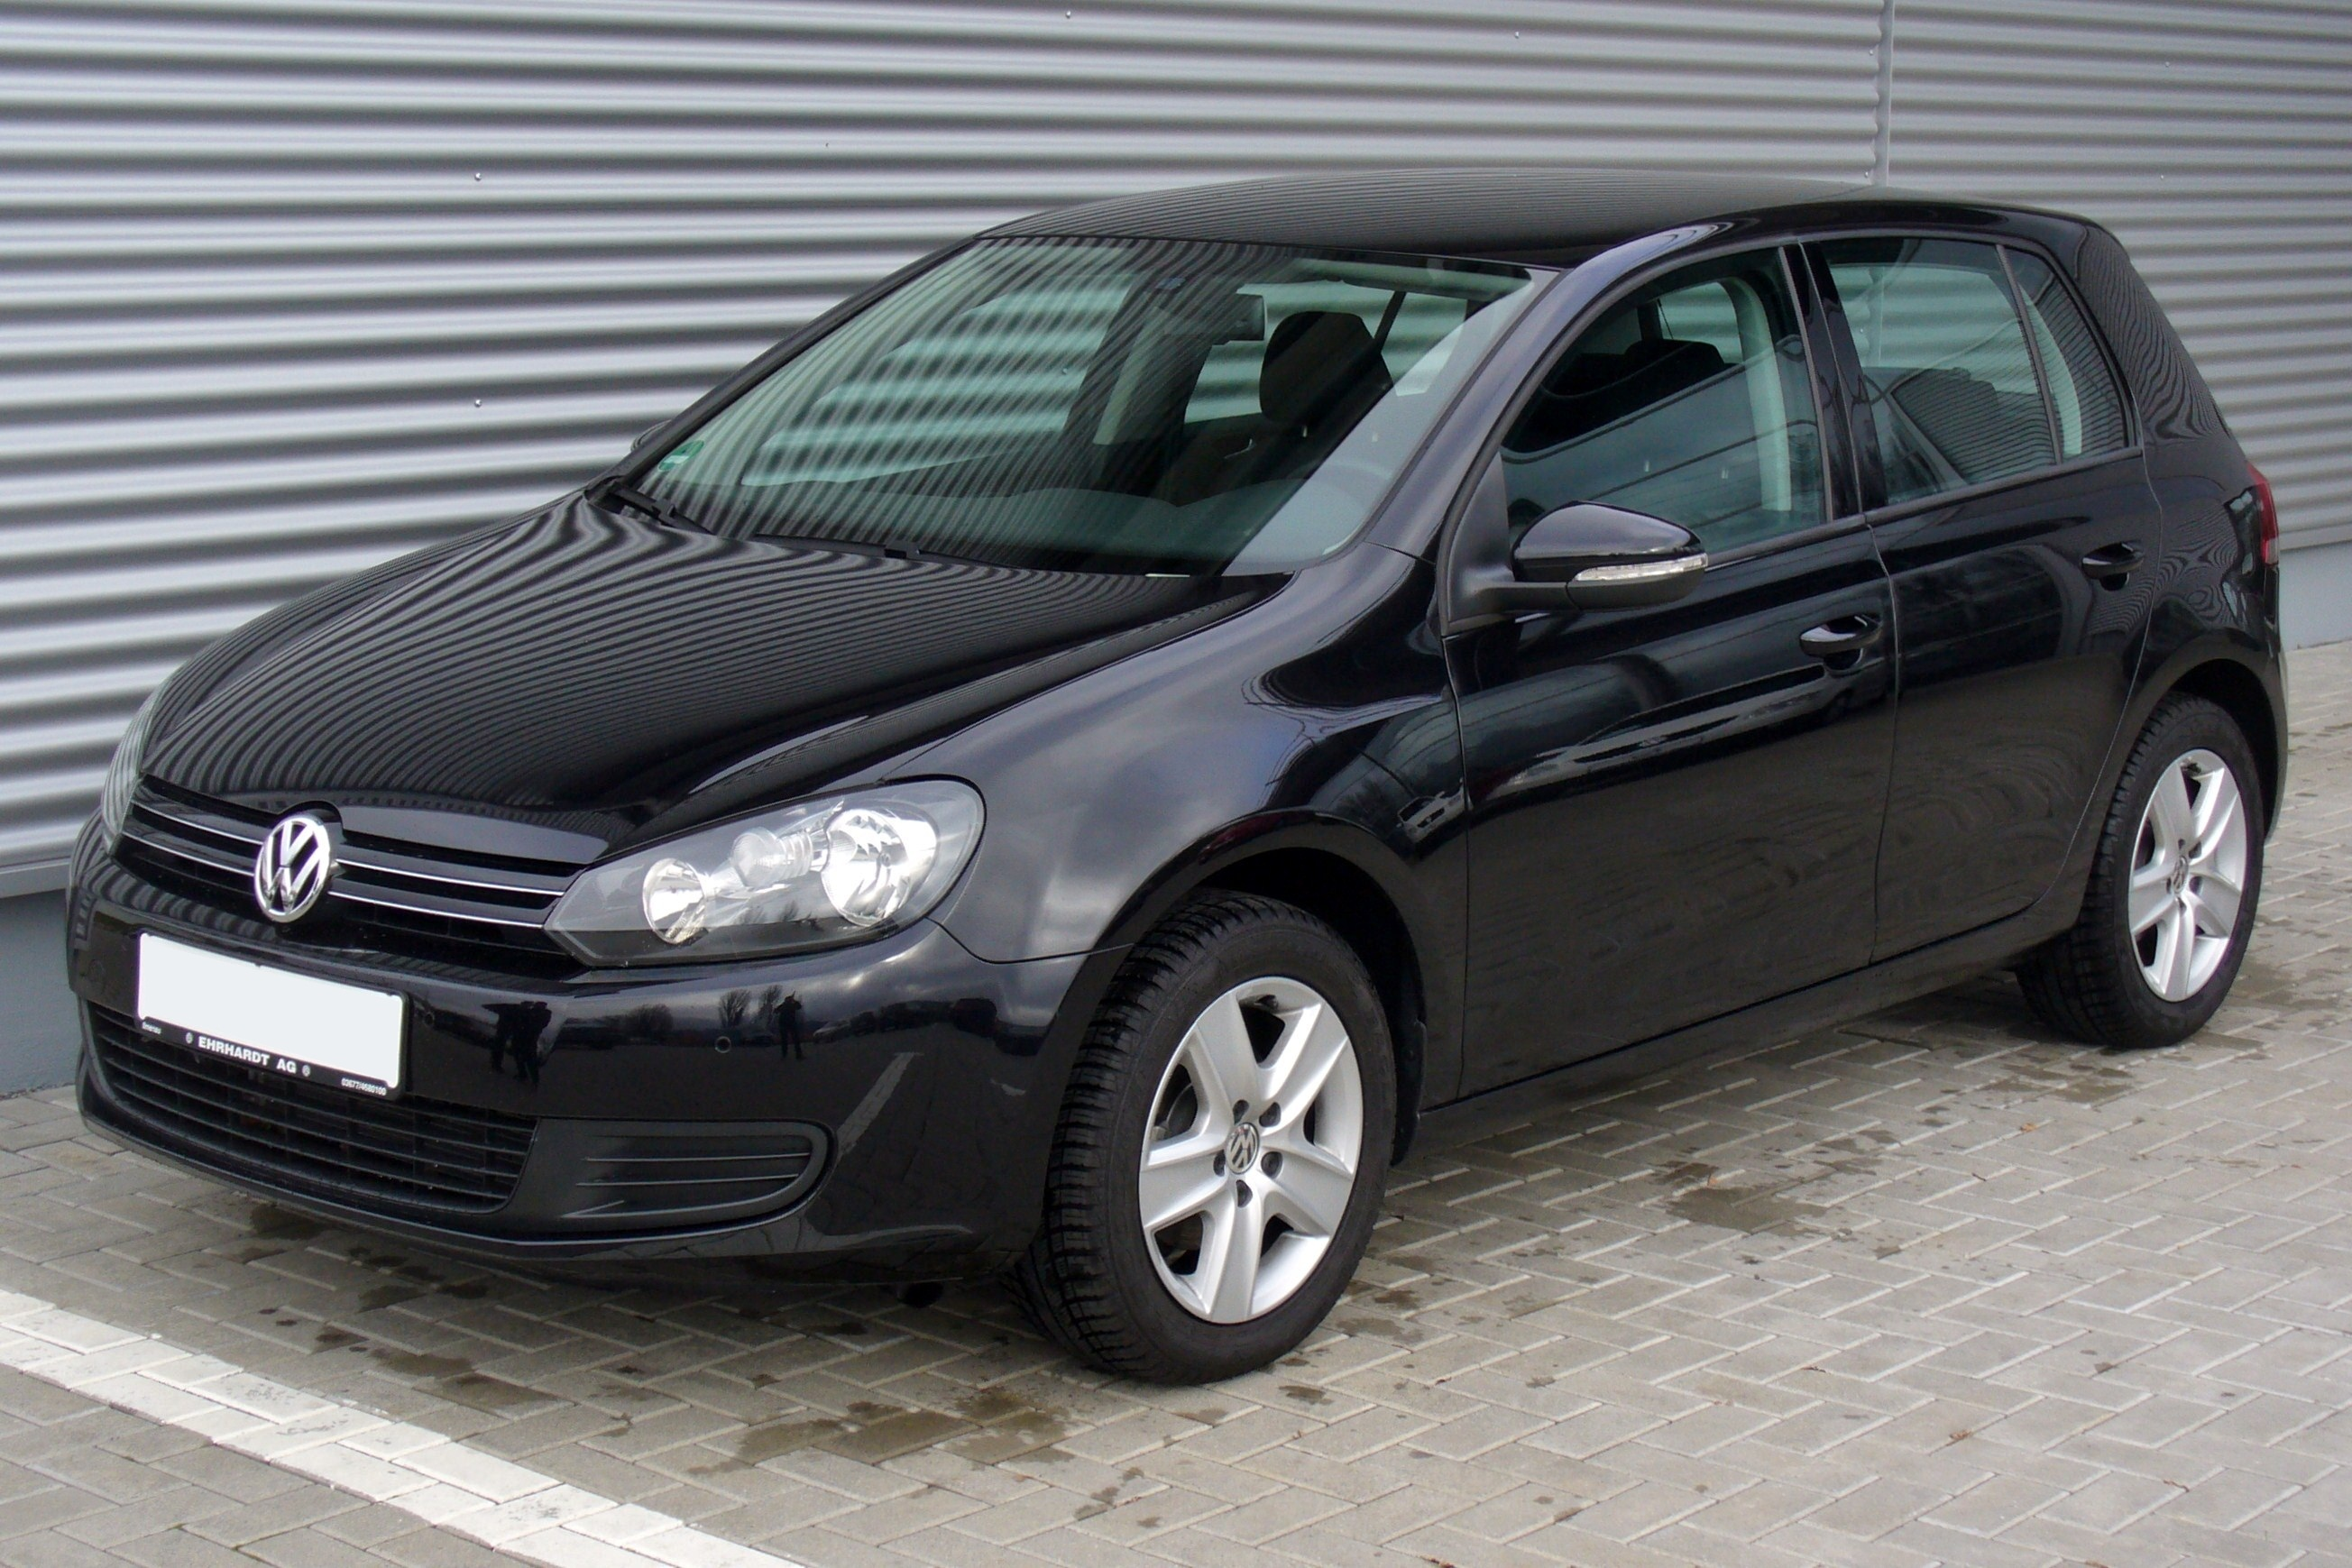 Volkswagen Golf 1.6 2010 photo - 4